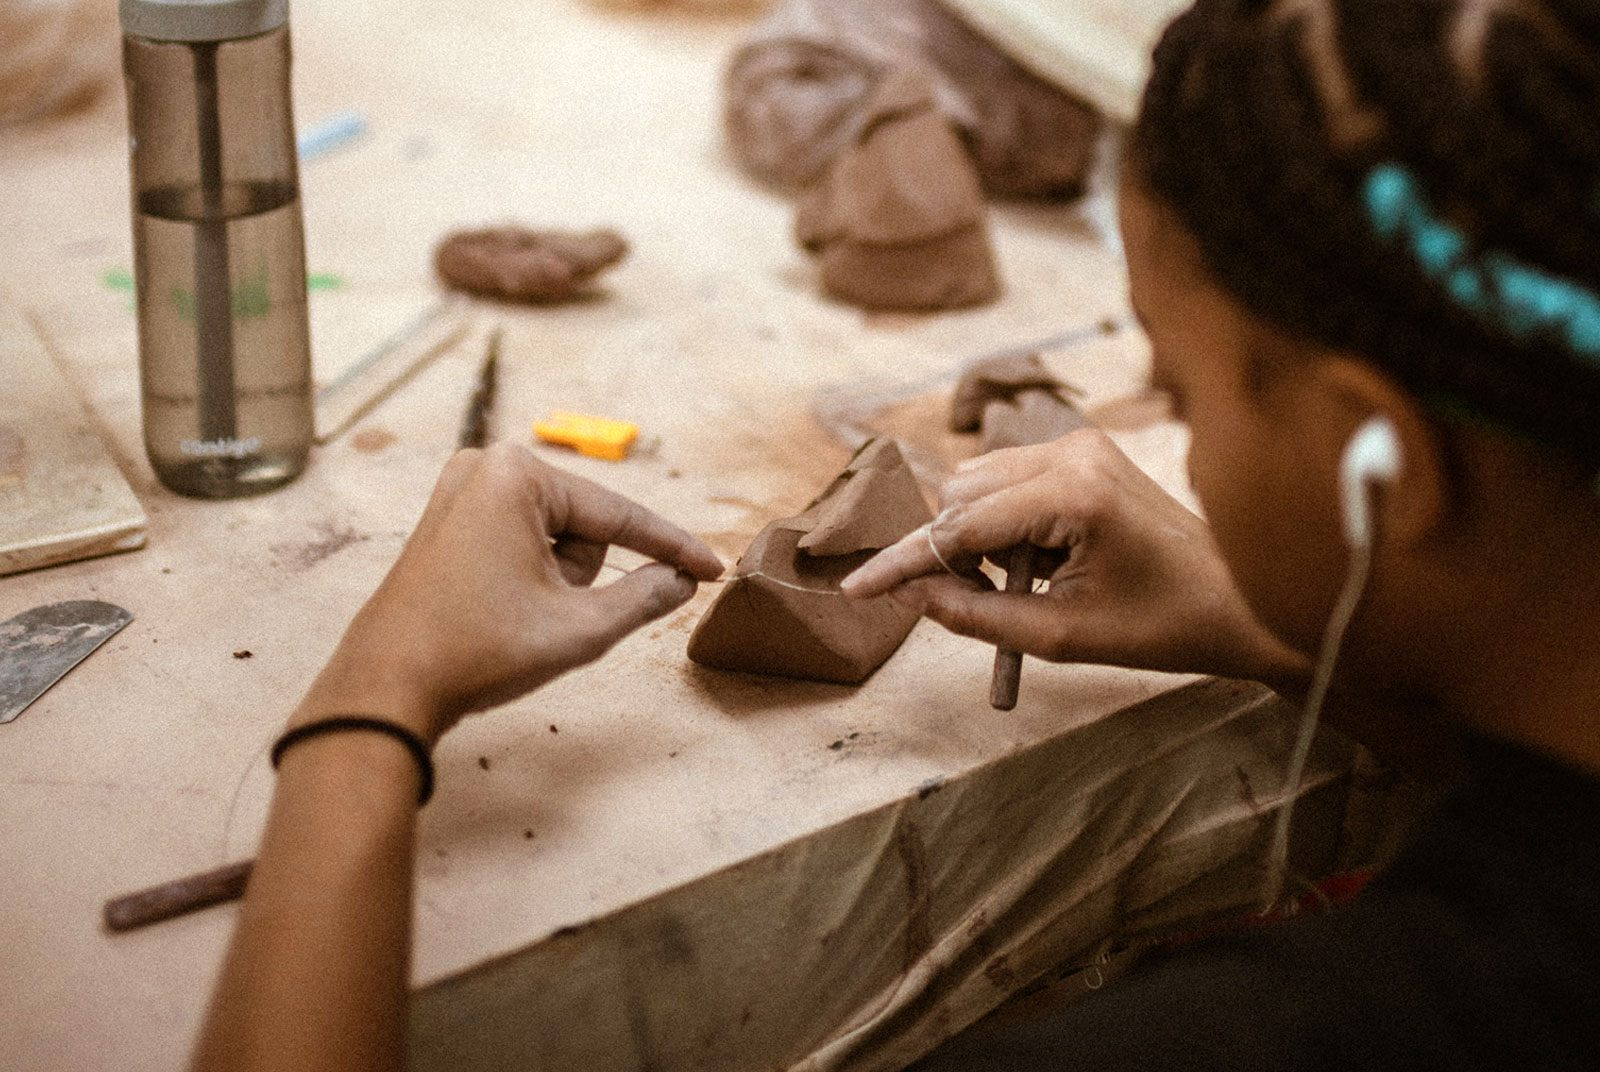 A young person working on a clay project.